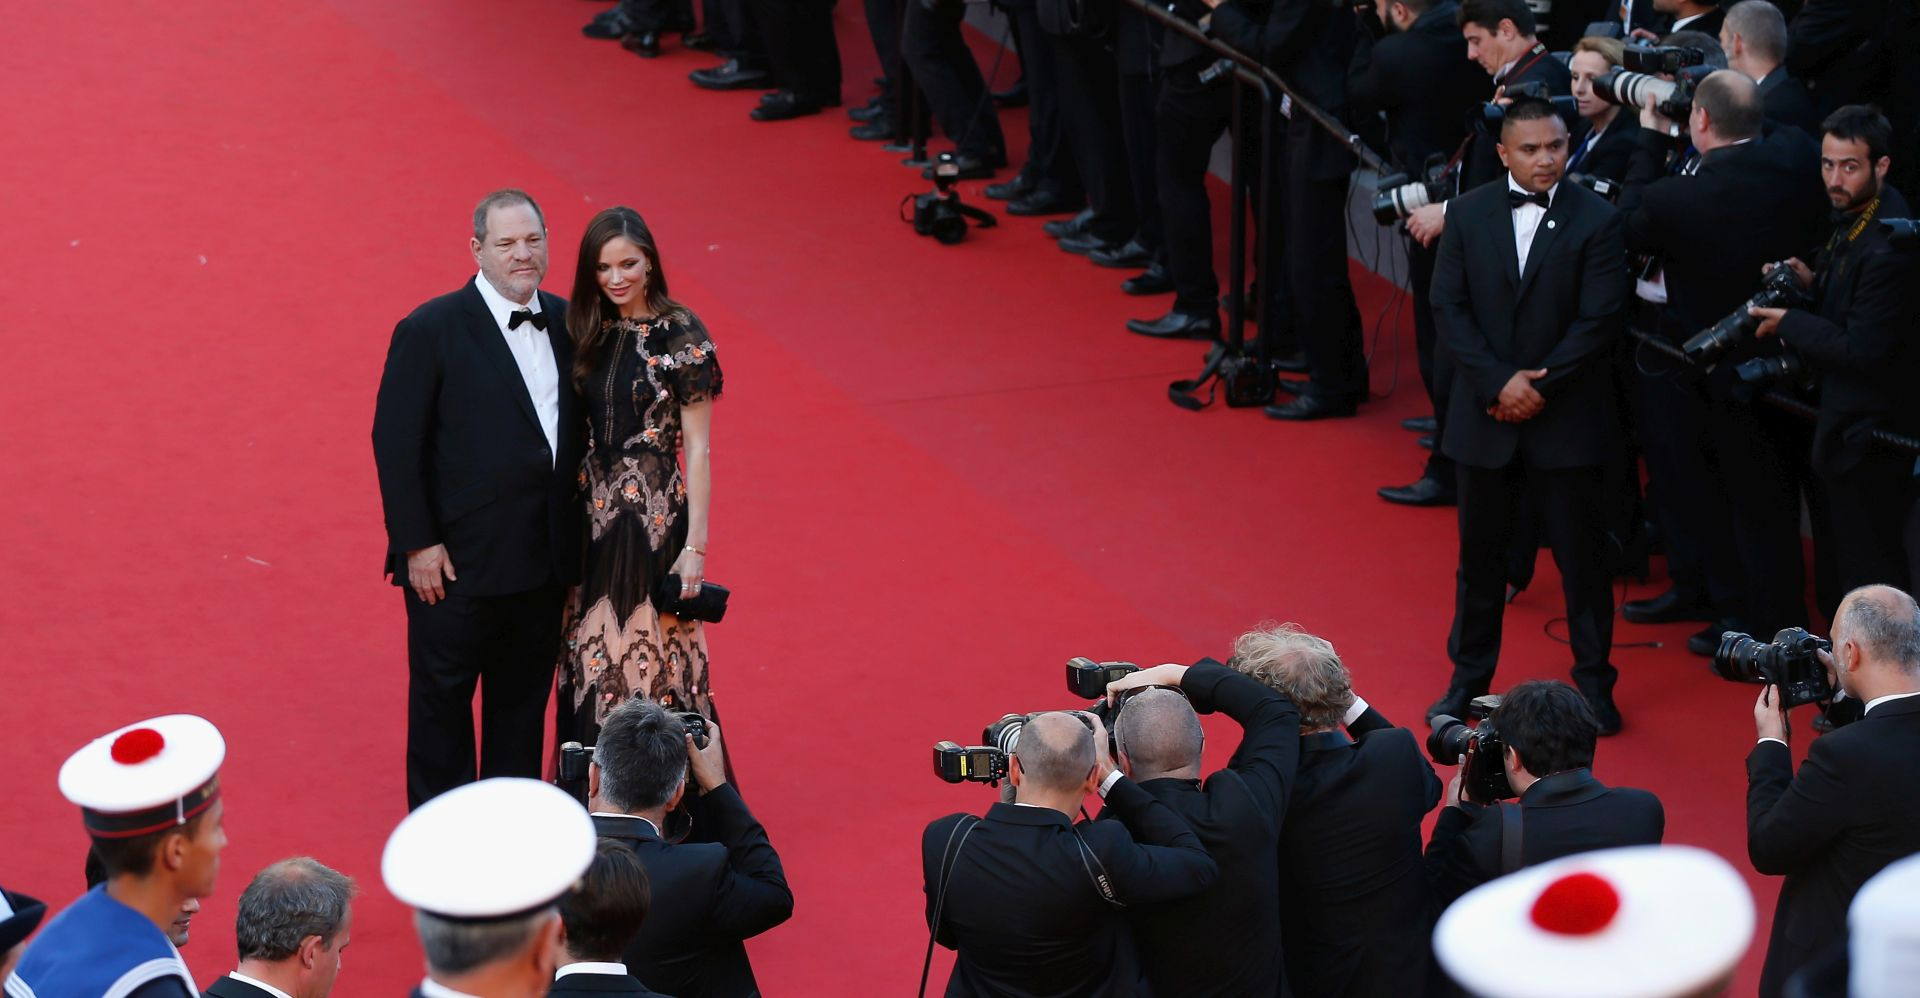 Harvey Weinstein i Georgina Chapman. FOTO: Tristan Fewings/Getty Images